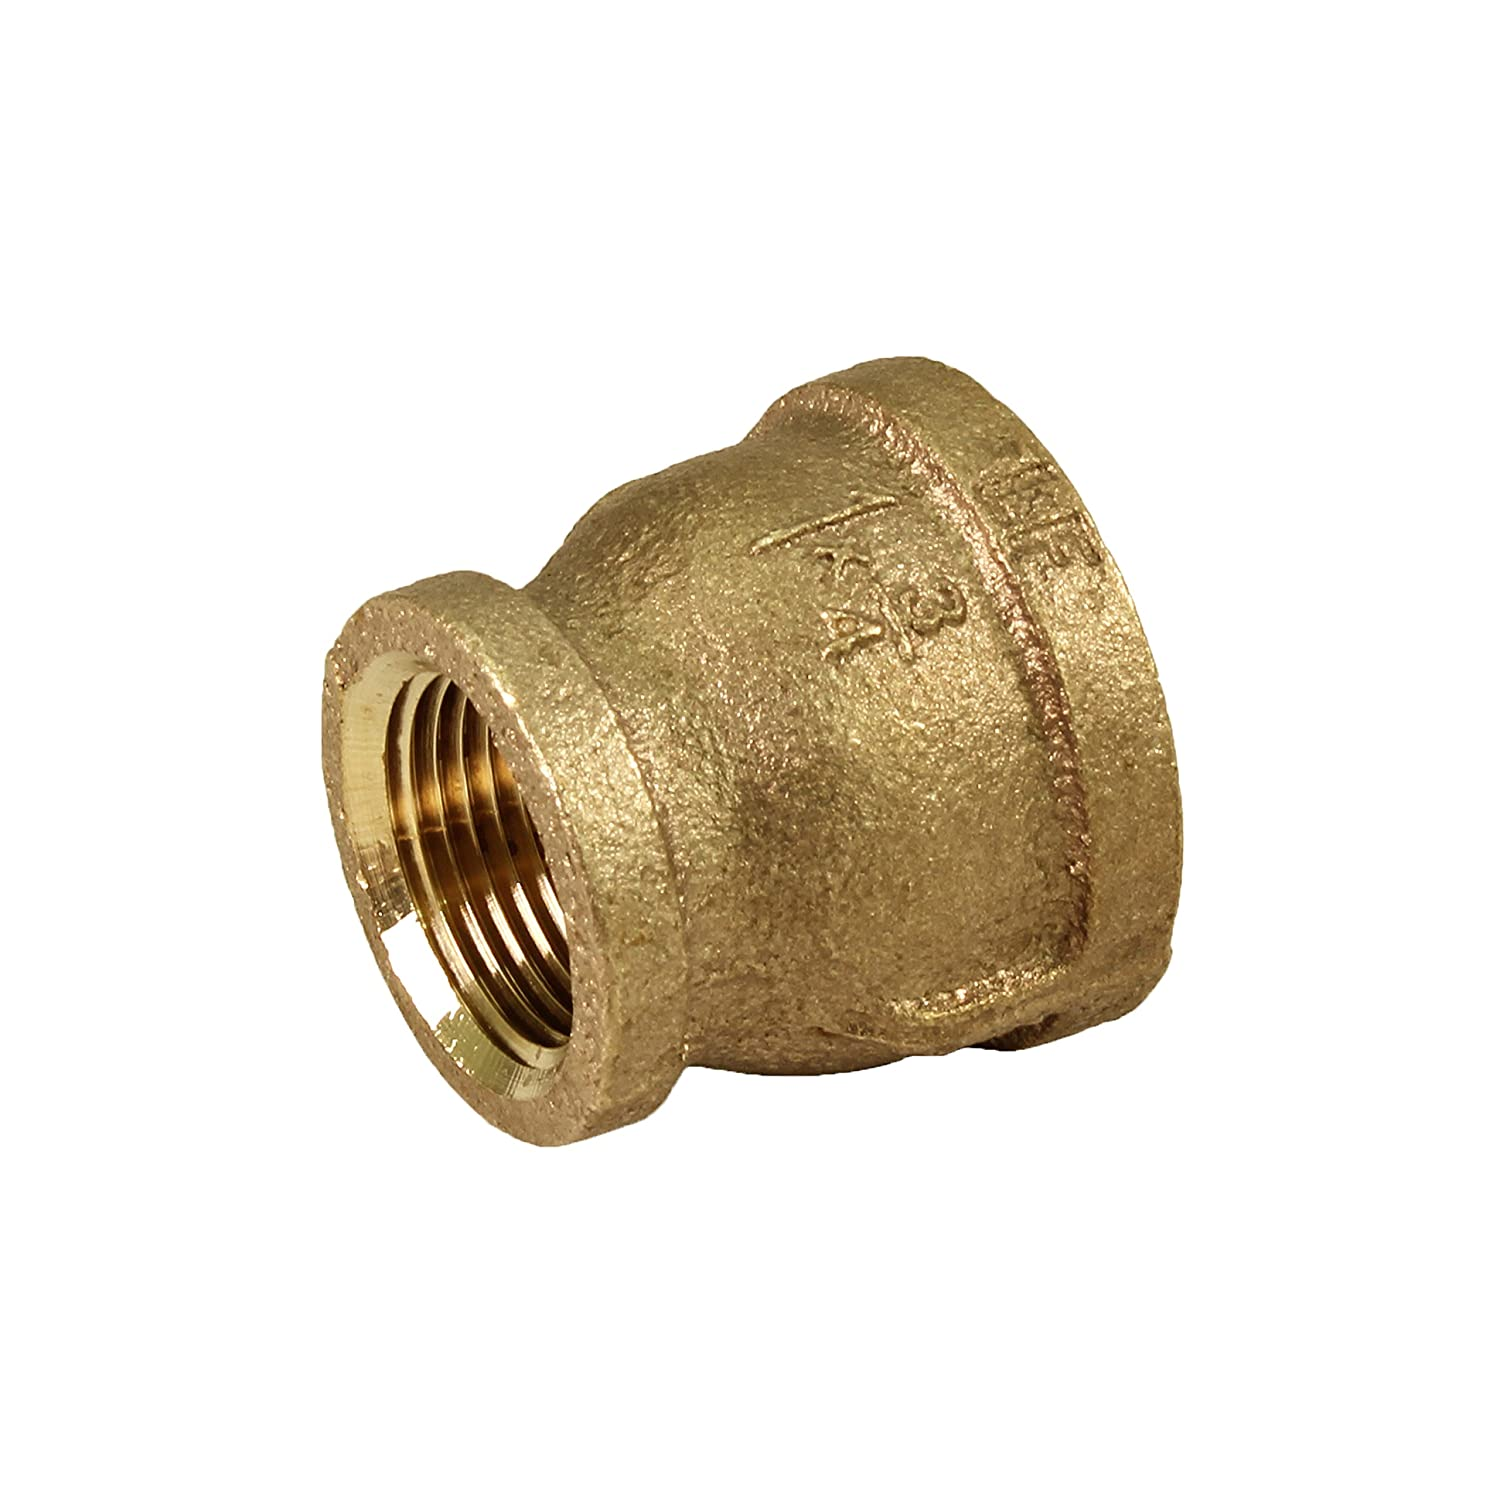 Higher Corrosion Resistance Brass Construction Everflow BRRC1142-NL 1-1//4 x 1 Inch Lead Free Brass Reducing Coupling with Female National Pipe Taper Threaded Ends Economical /& Easy to Install